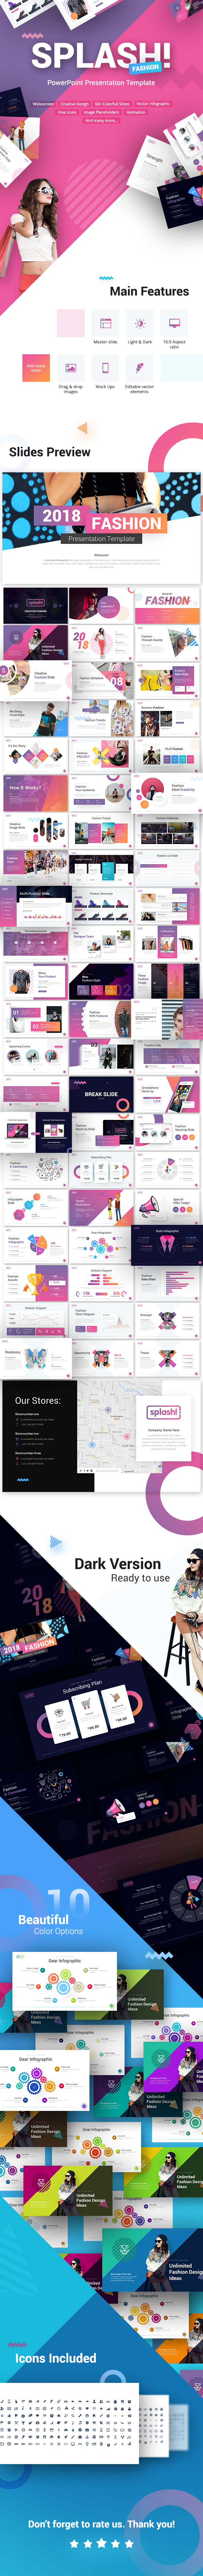 Splash Fashion PowerPoint Presentation Template - PowerPoint Templates Presentation Templates